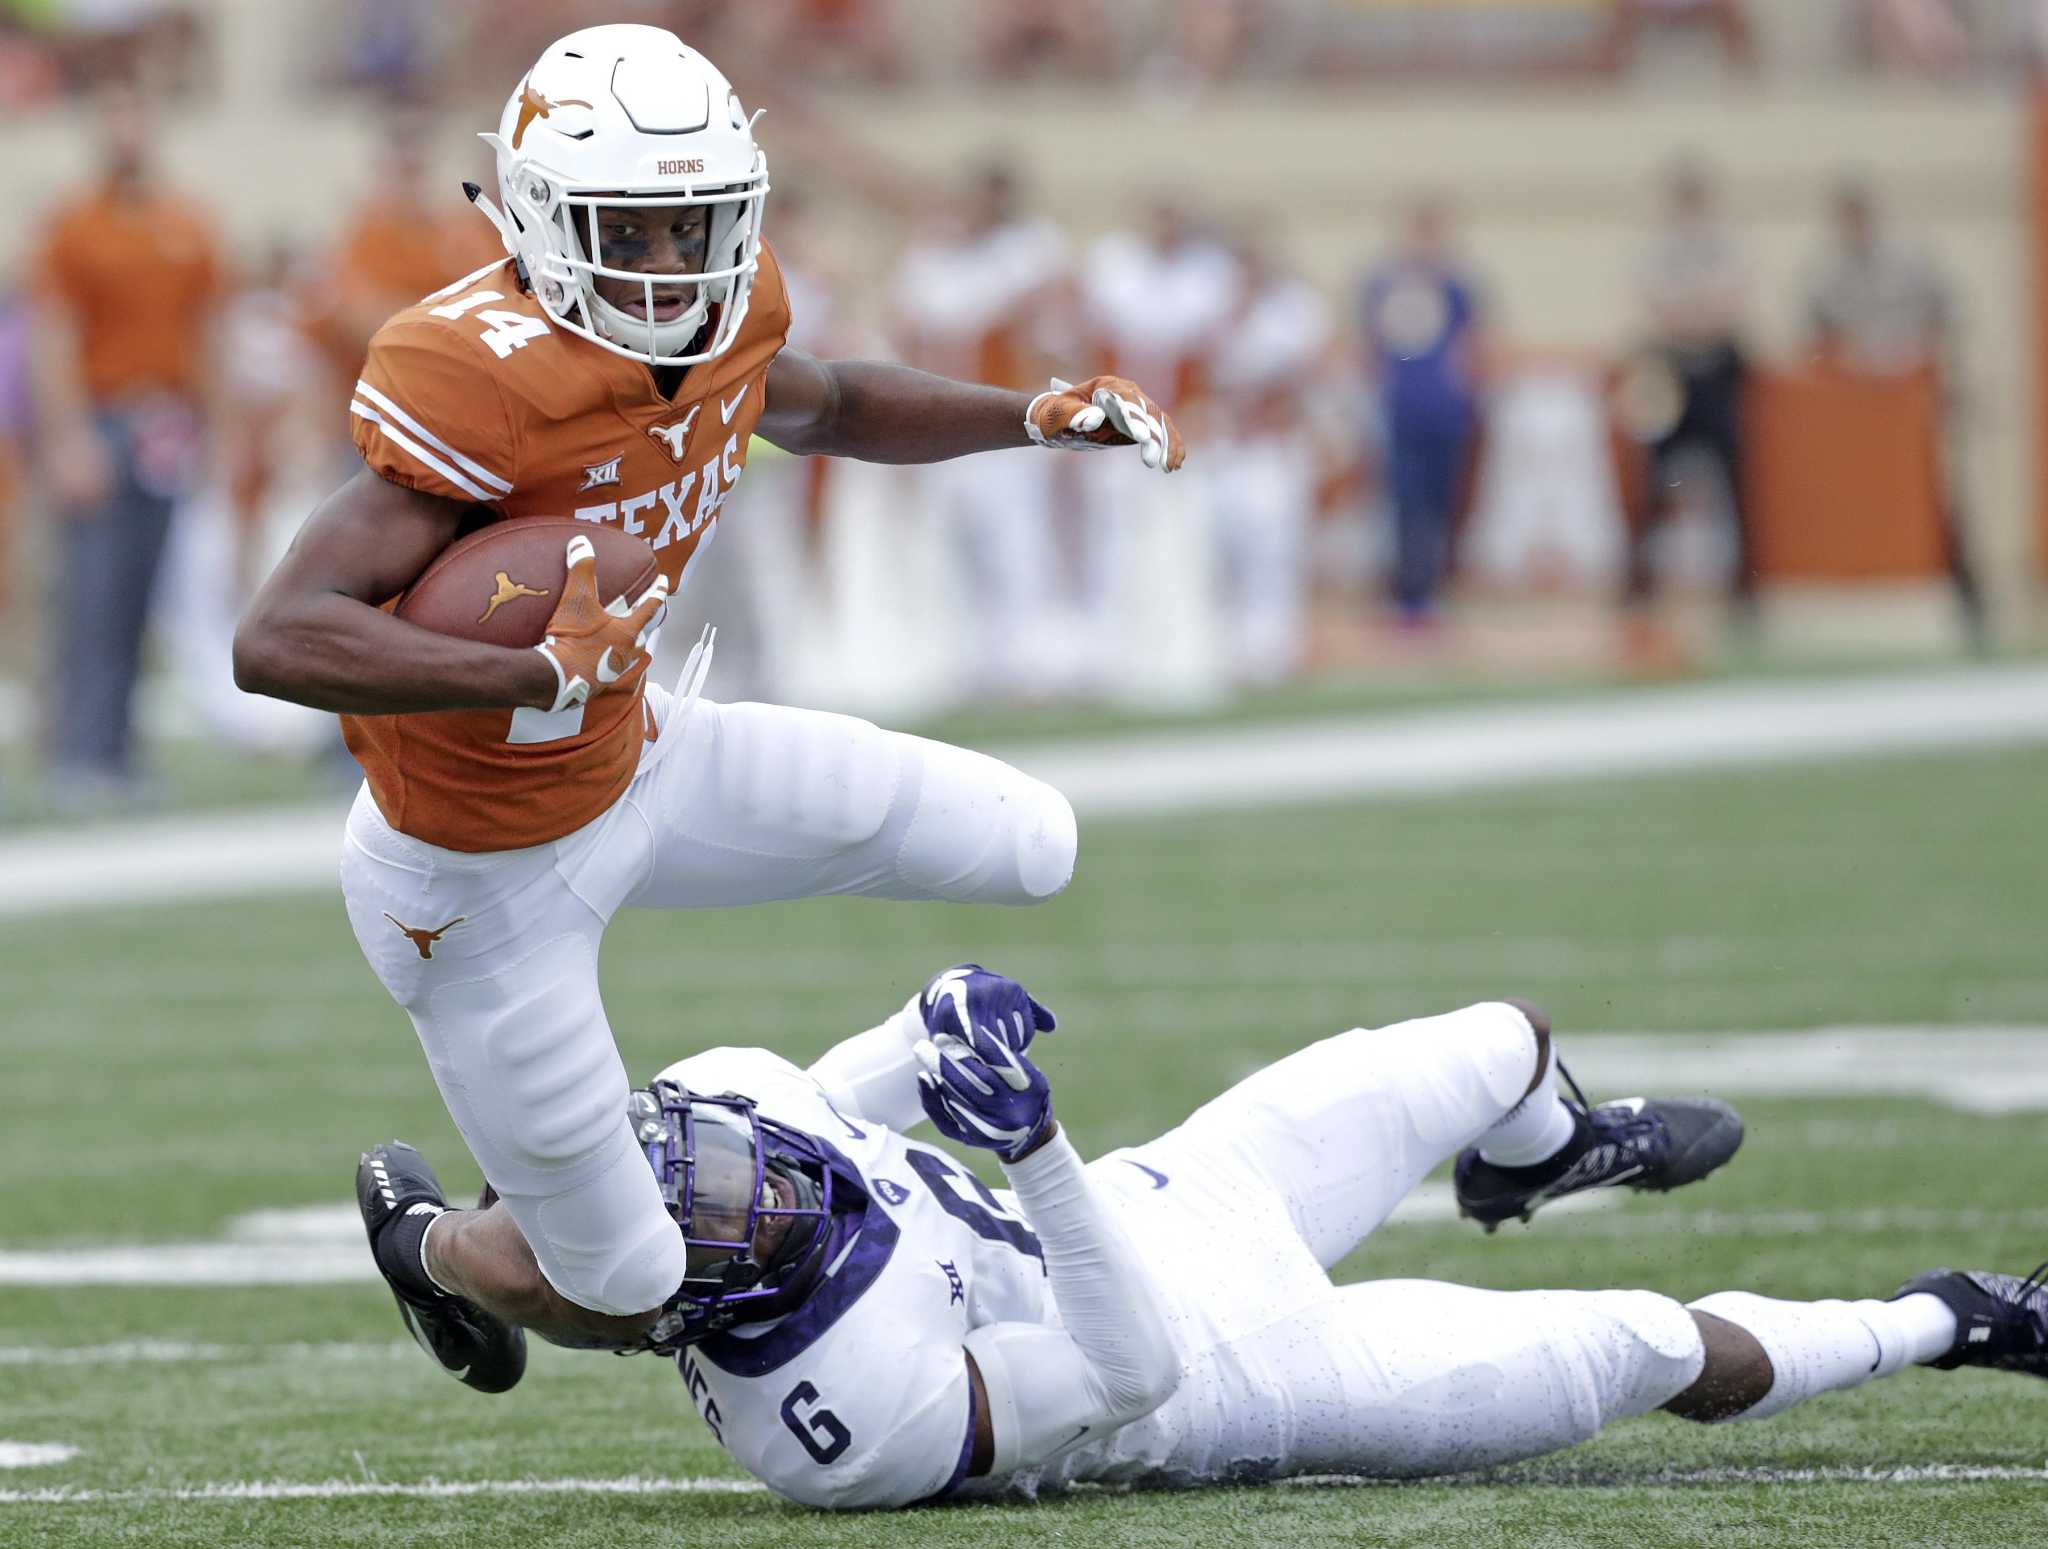 Tom Herman: 'No decision' yet on Texas WR Josh Moore following weapon charge